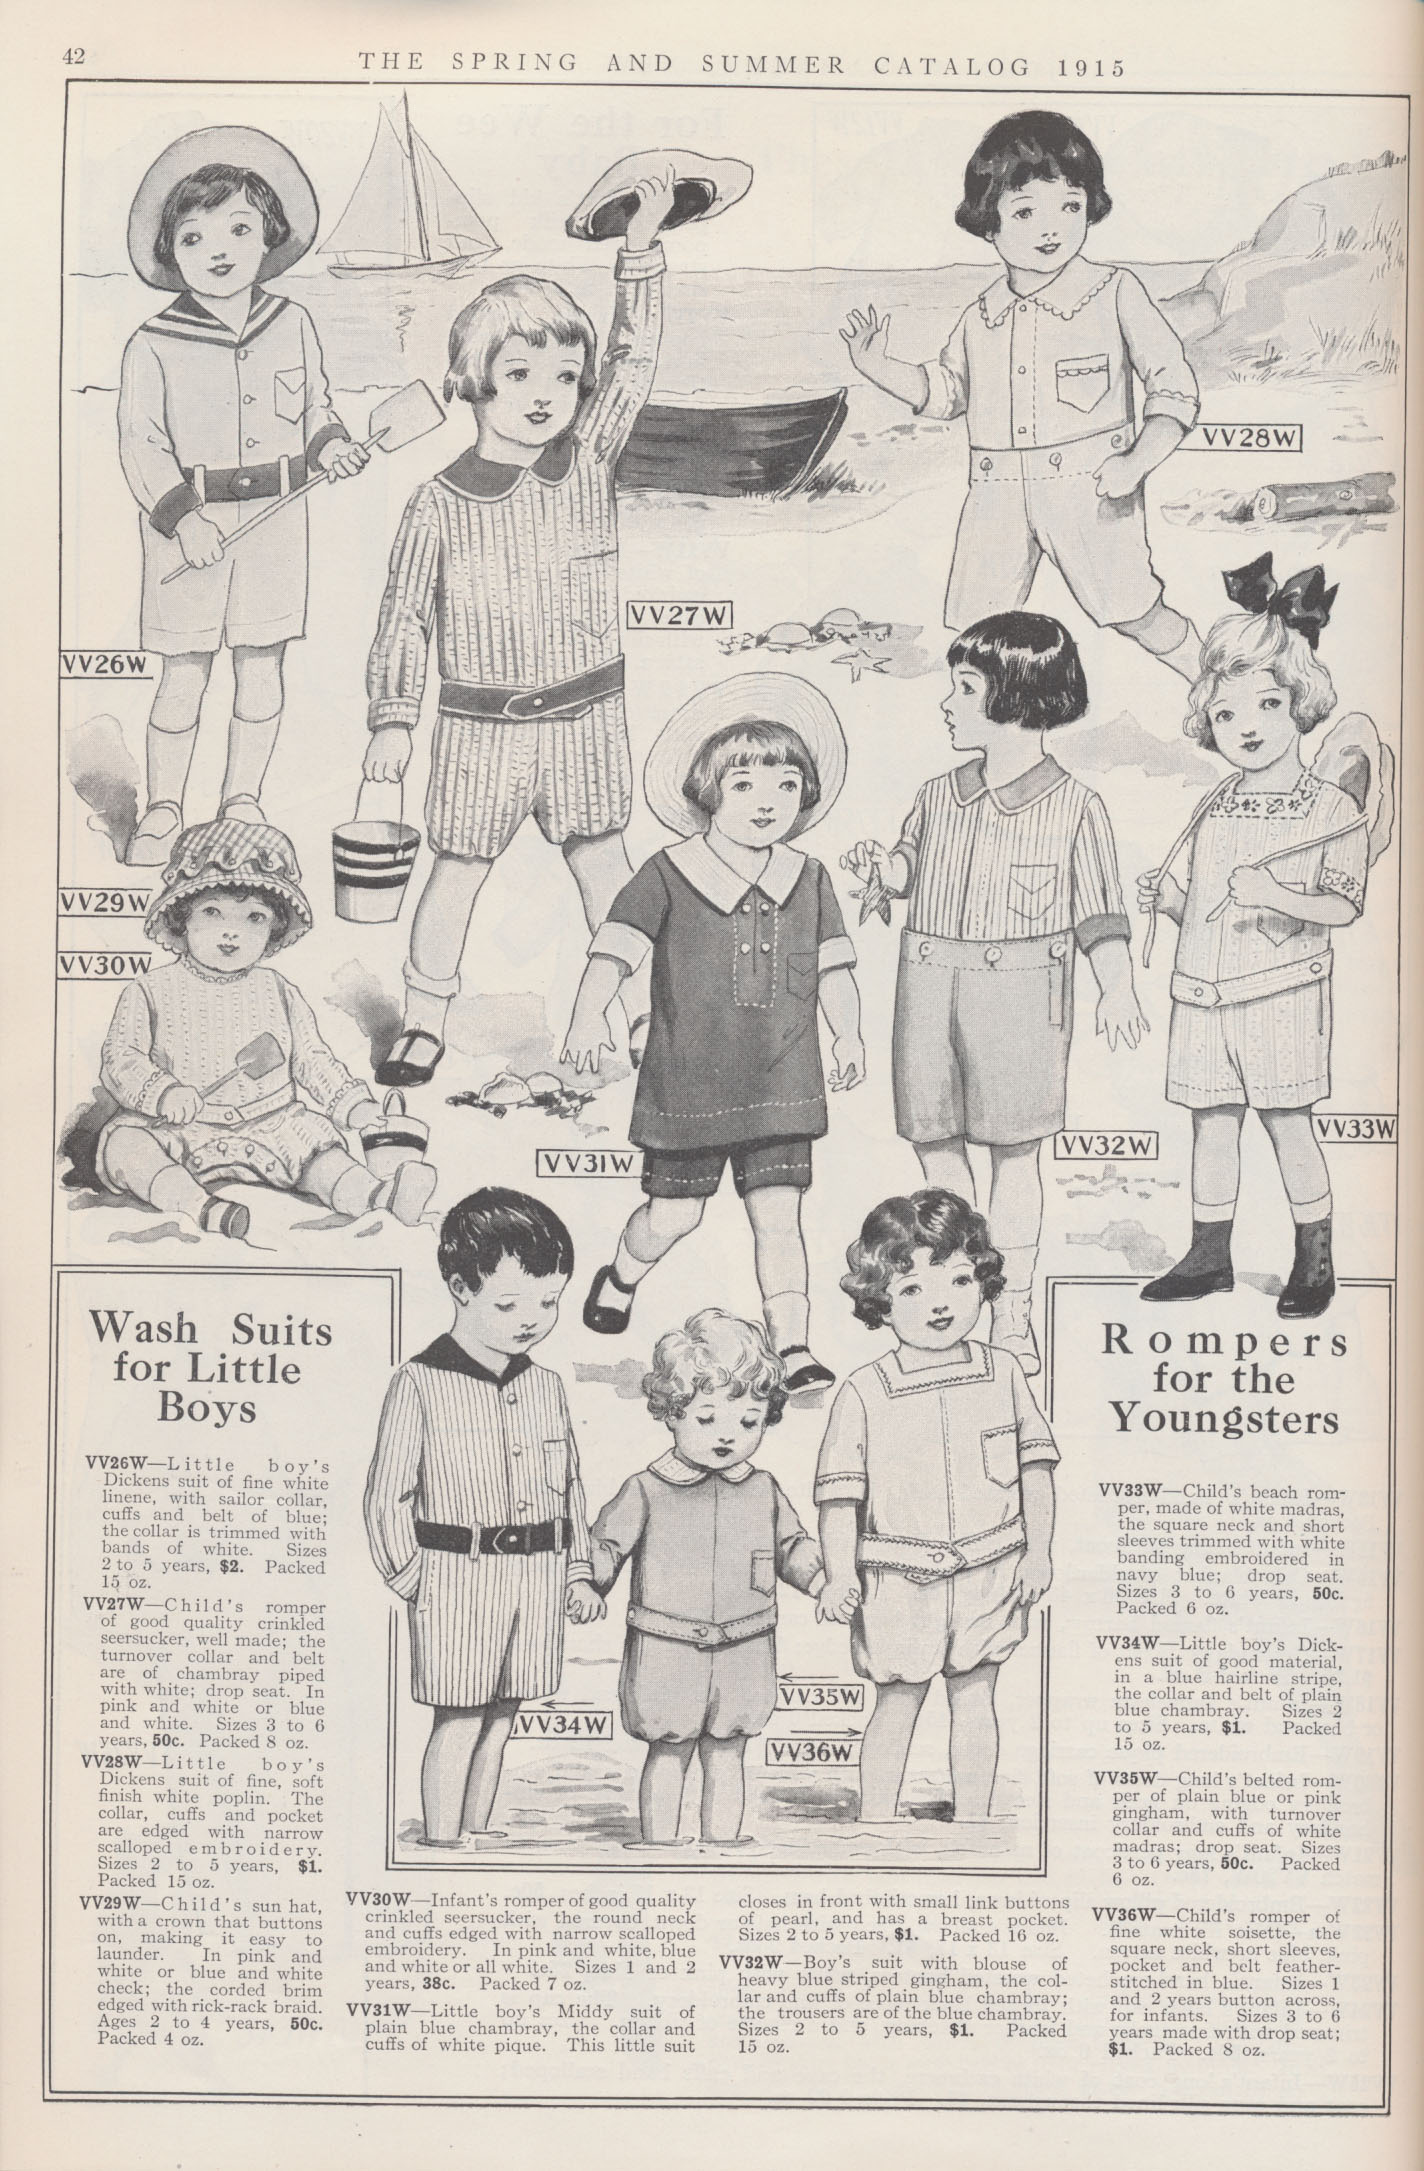 Boys' Wash Suits, Child's Rompers, and Child's Hat